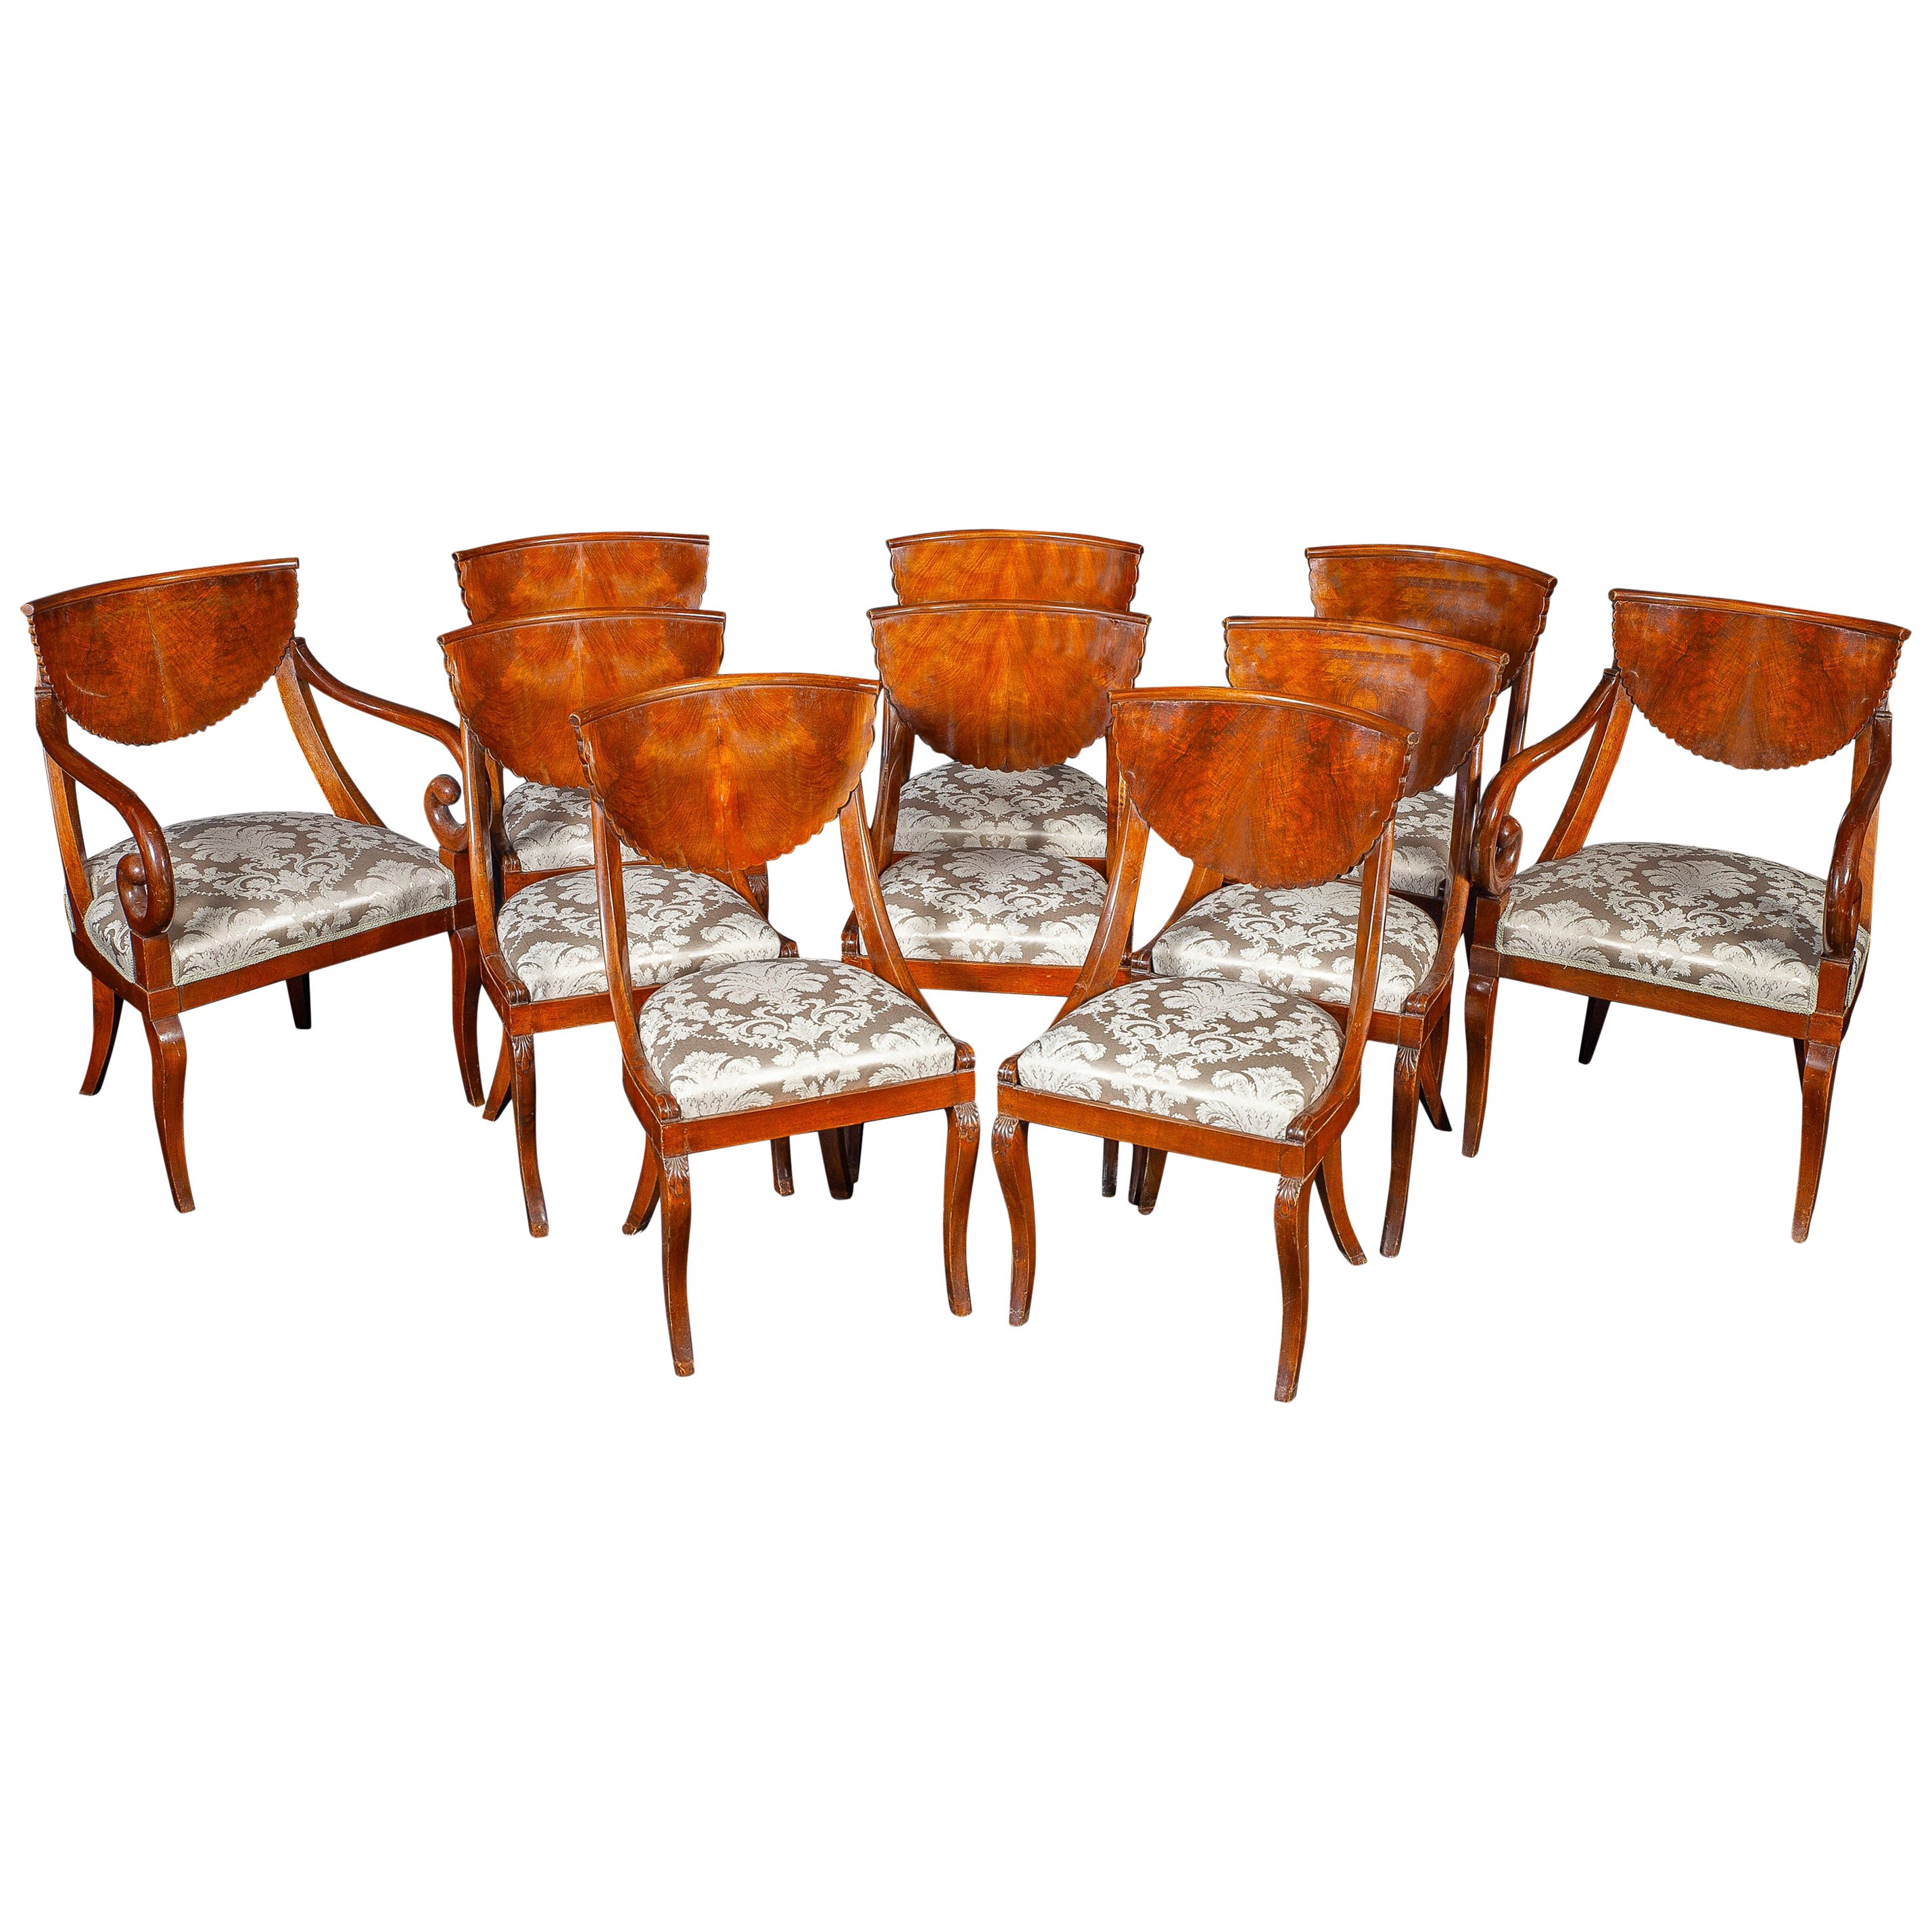 Dining Room Set of Eight Italian Chairs and a Pair of Armchairs, 1790